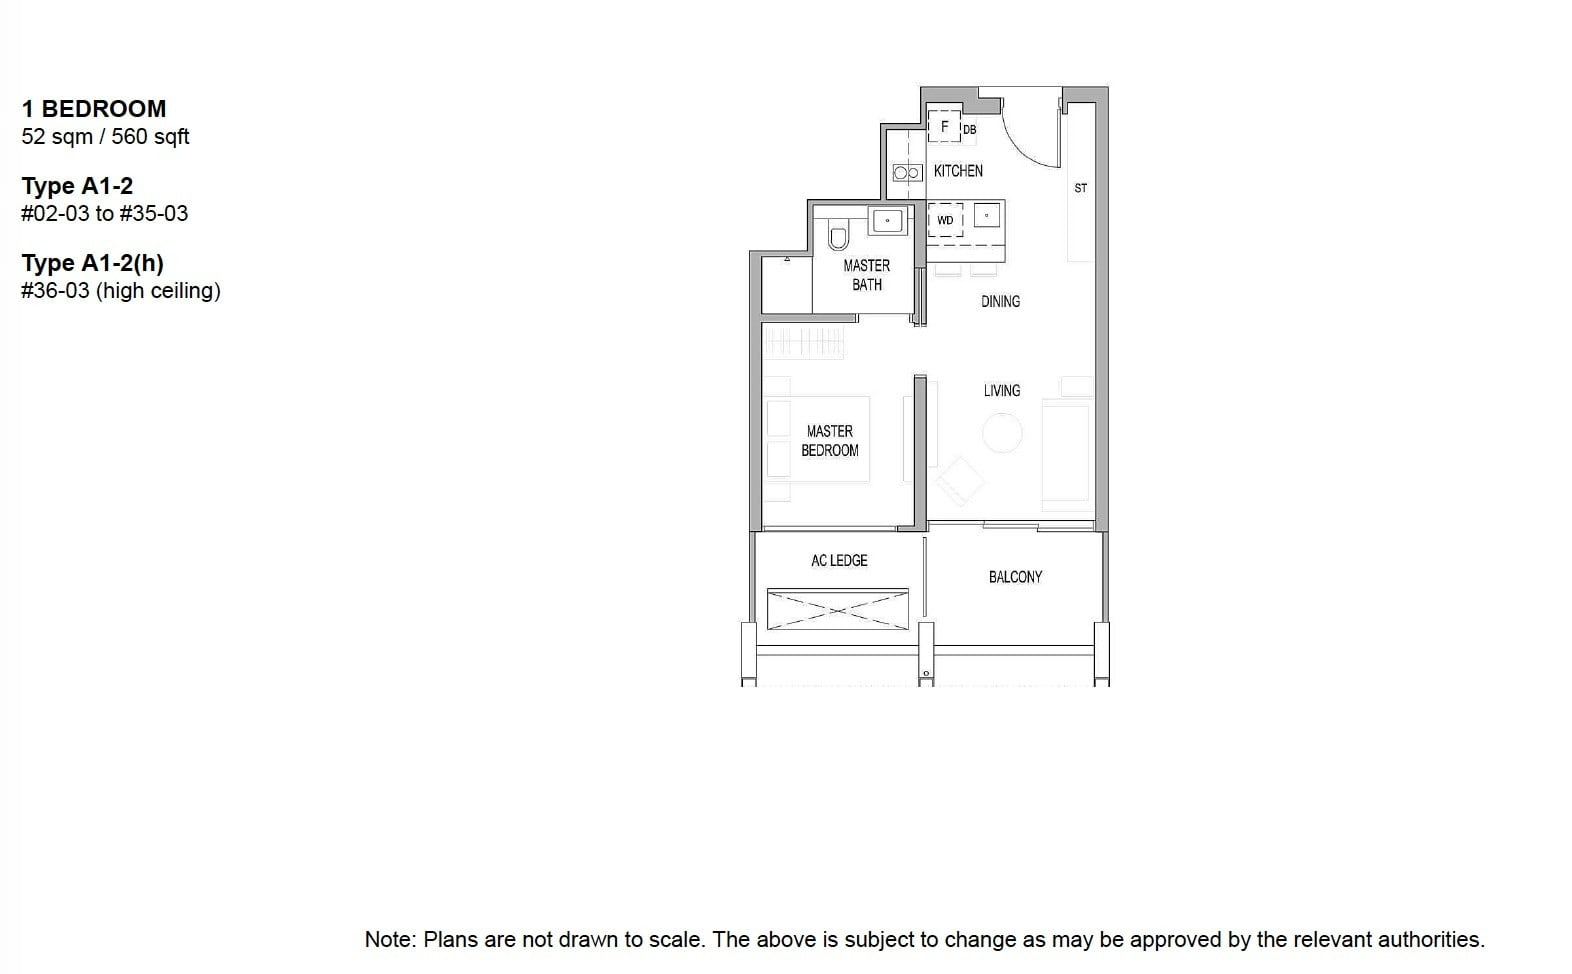 Riviere river valley floor plan 1BR 560 sqft